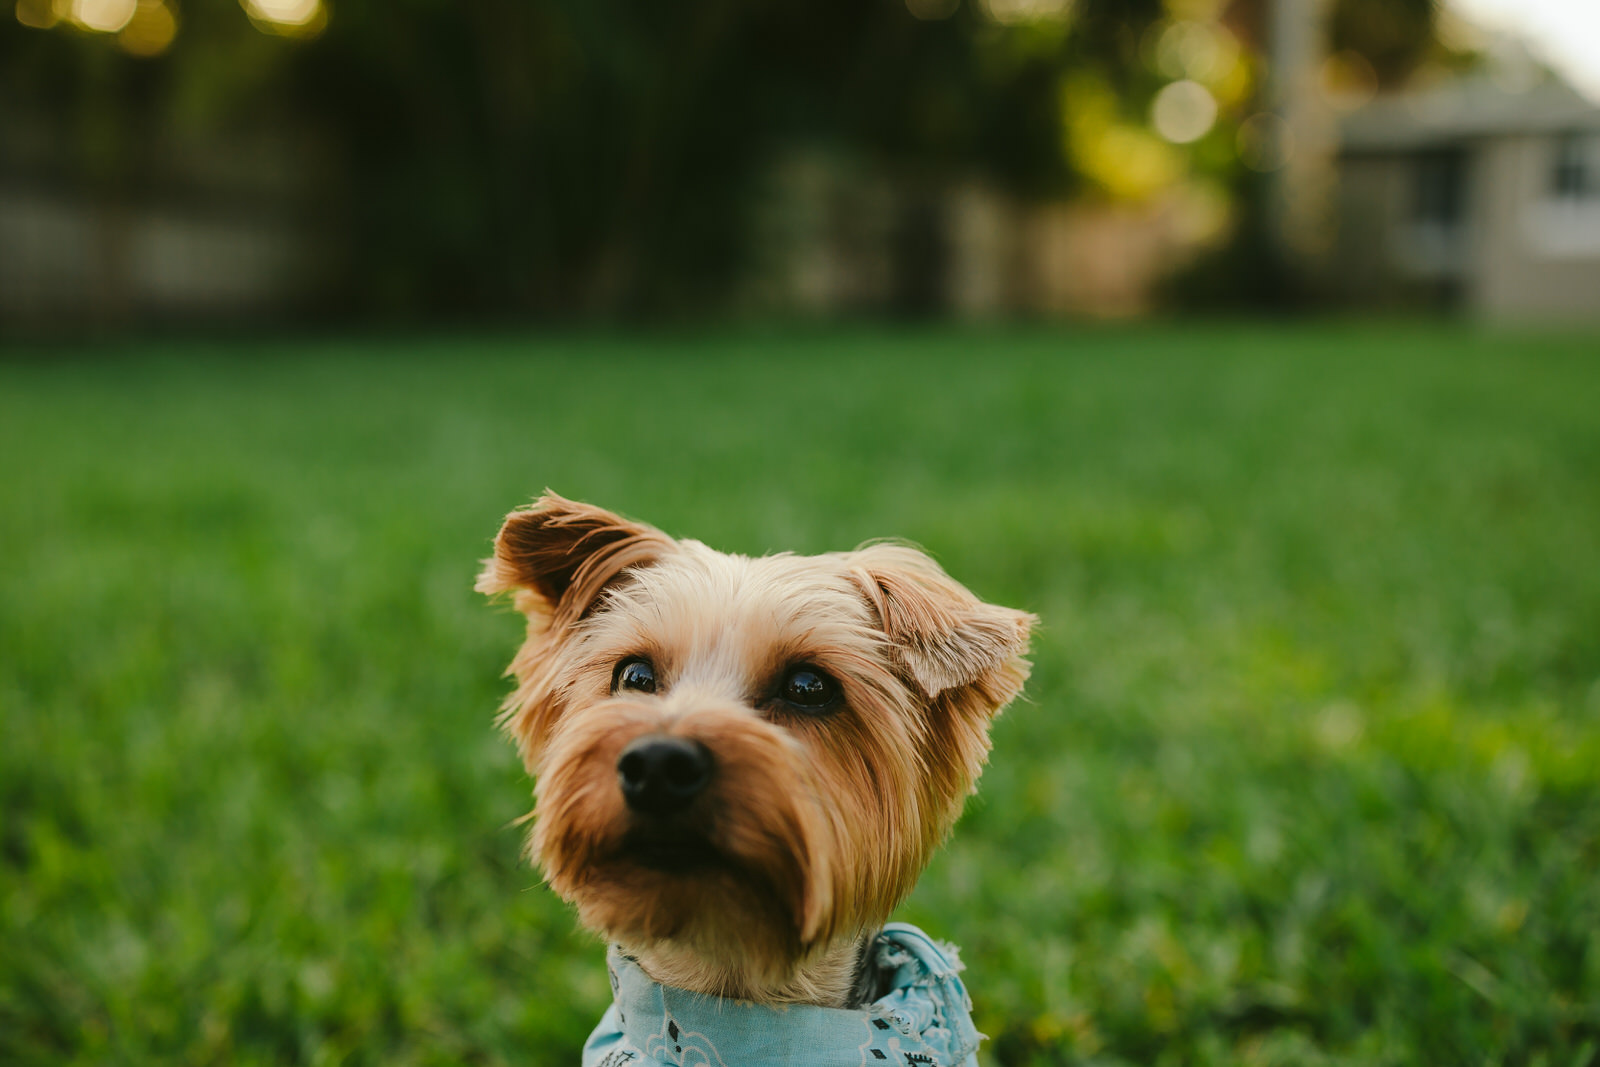 fort lauderdale pet photographer dog yorkie